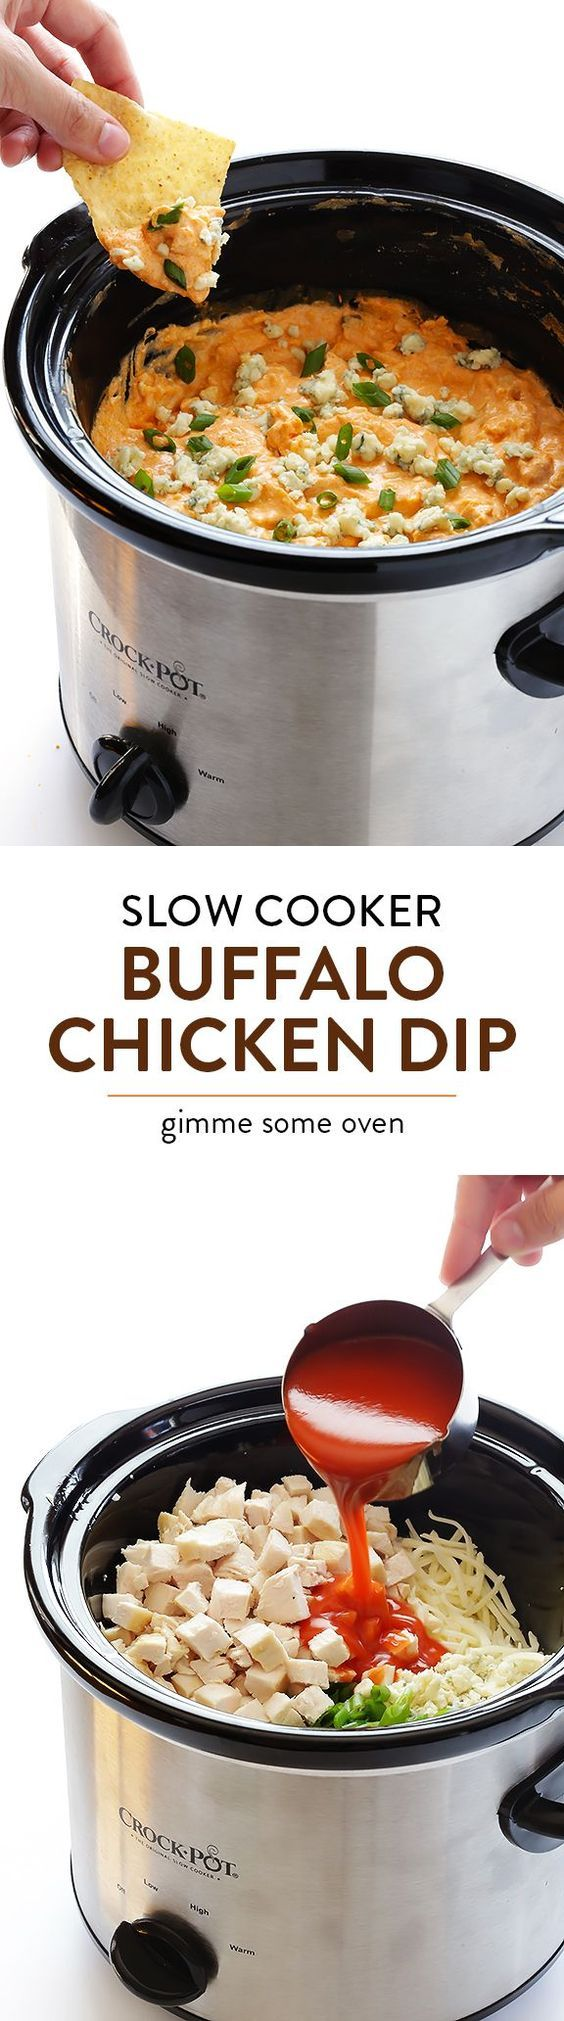 Slow Cooker Buffalo Chicken Dip -- the irresistible appetizer we all love, made extra easy (with 10 mins prep!) in the crock pot | gimmesomeoven.com